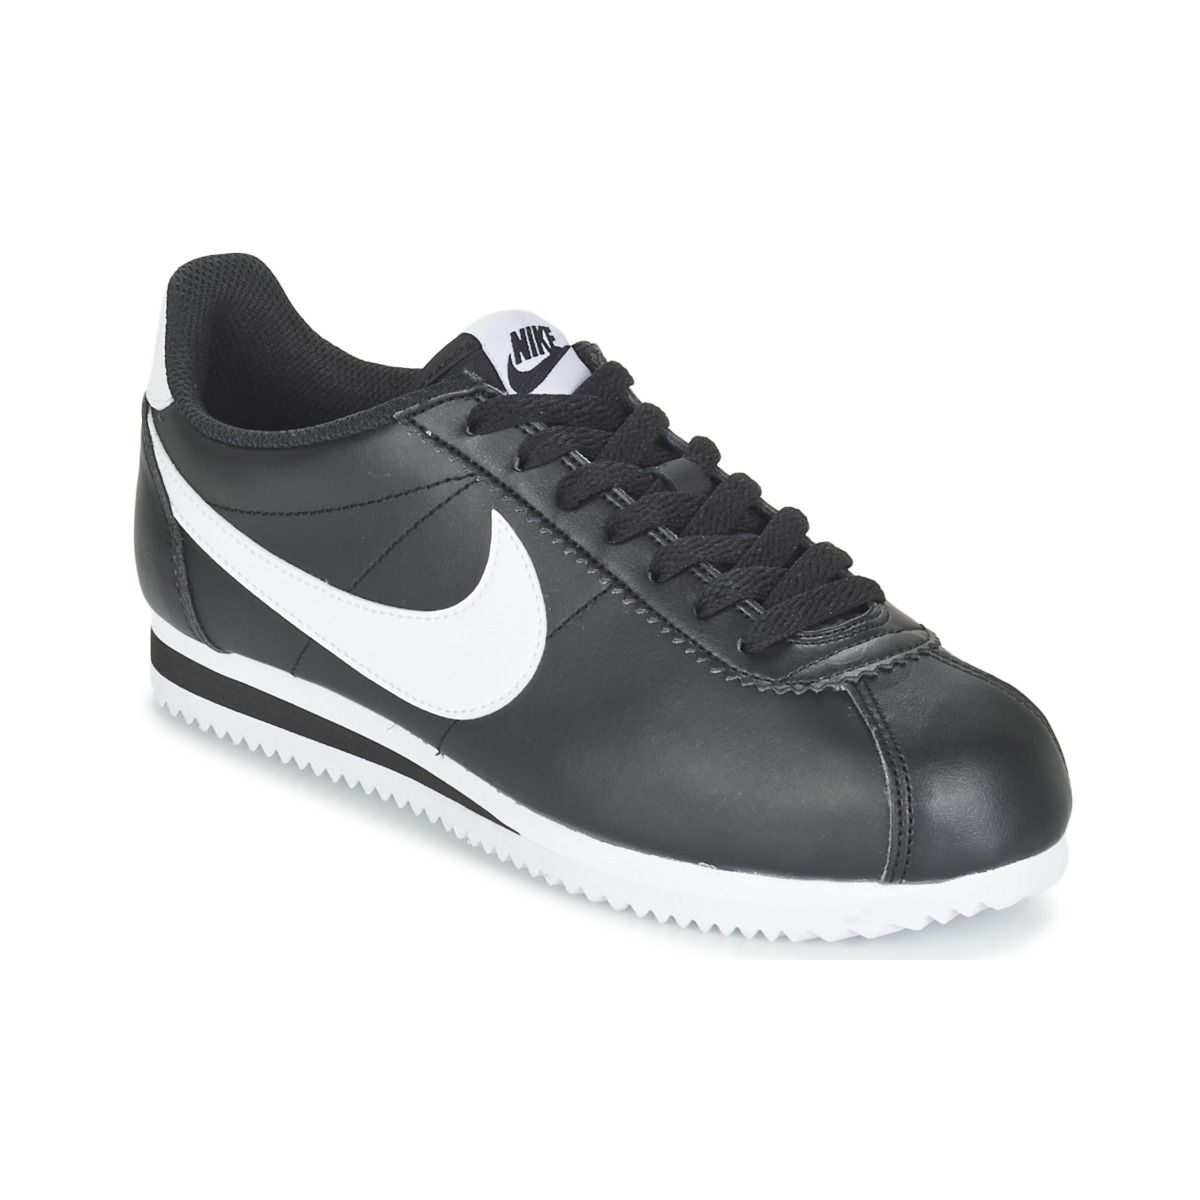 nike classic cortez leather w noir blanc livraison gratuite avec chaussures. Black Bedroom Furniture Sets. Home Design Ideas